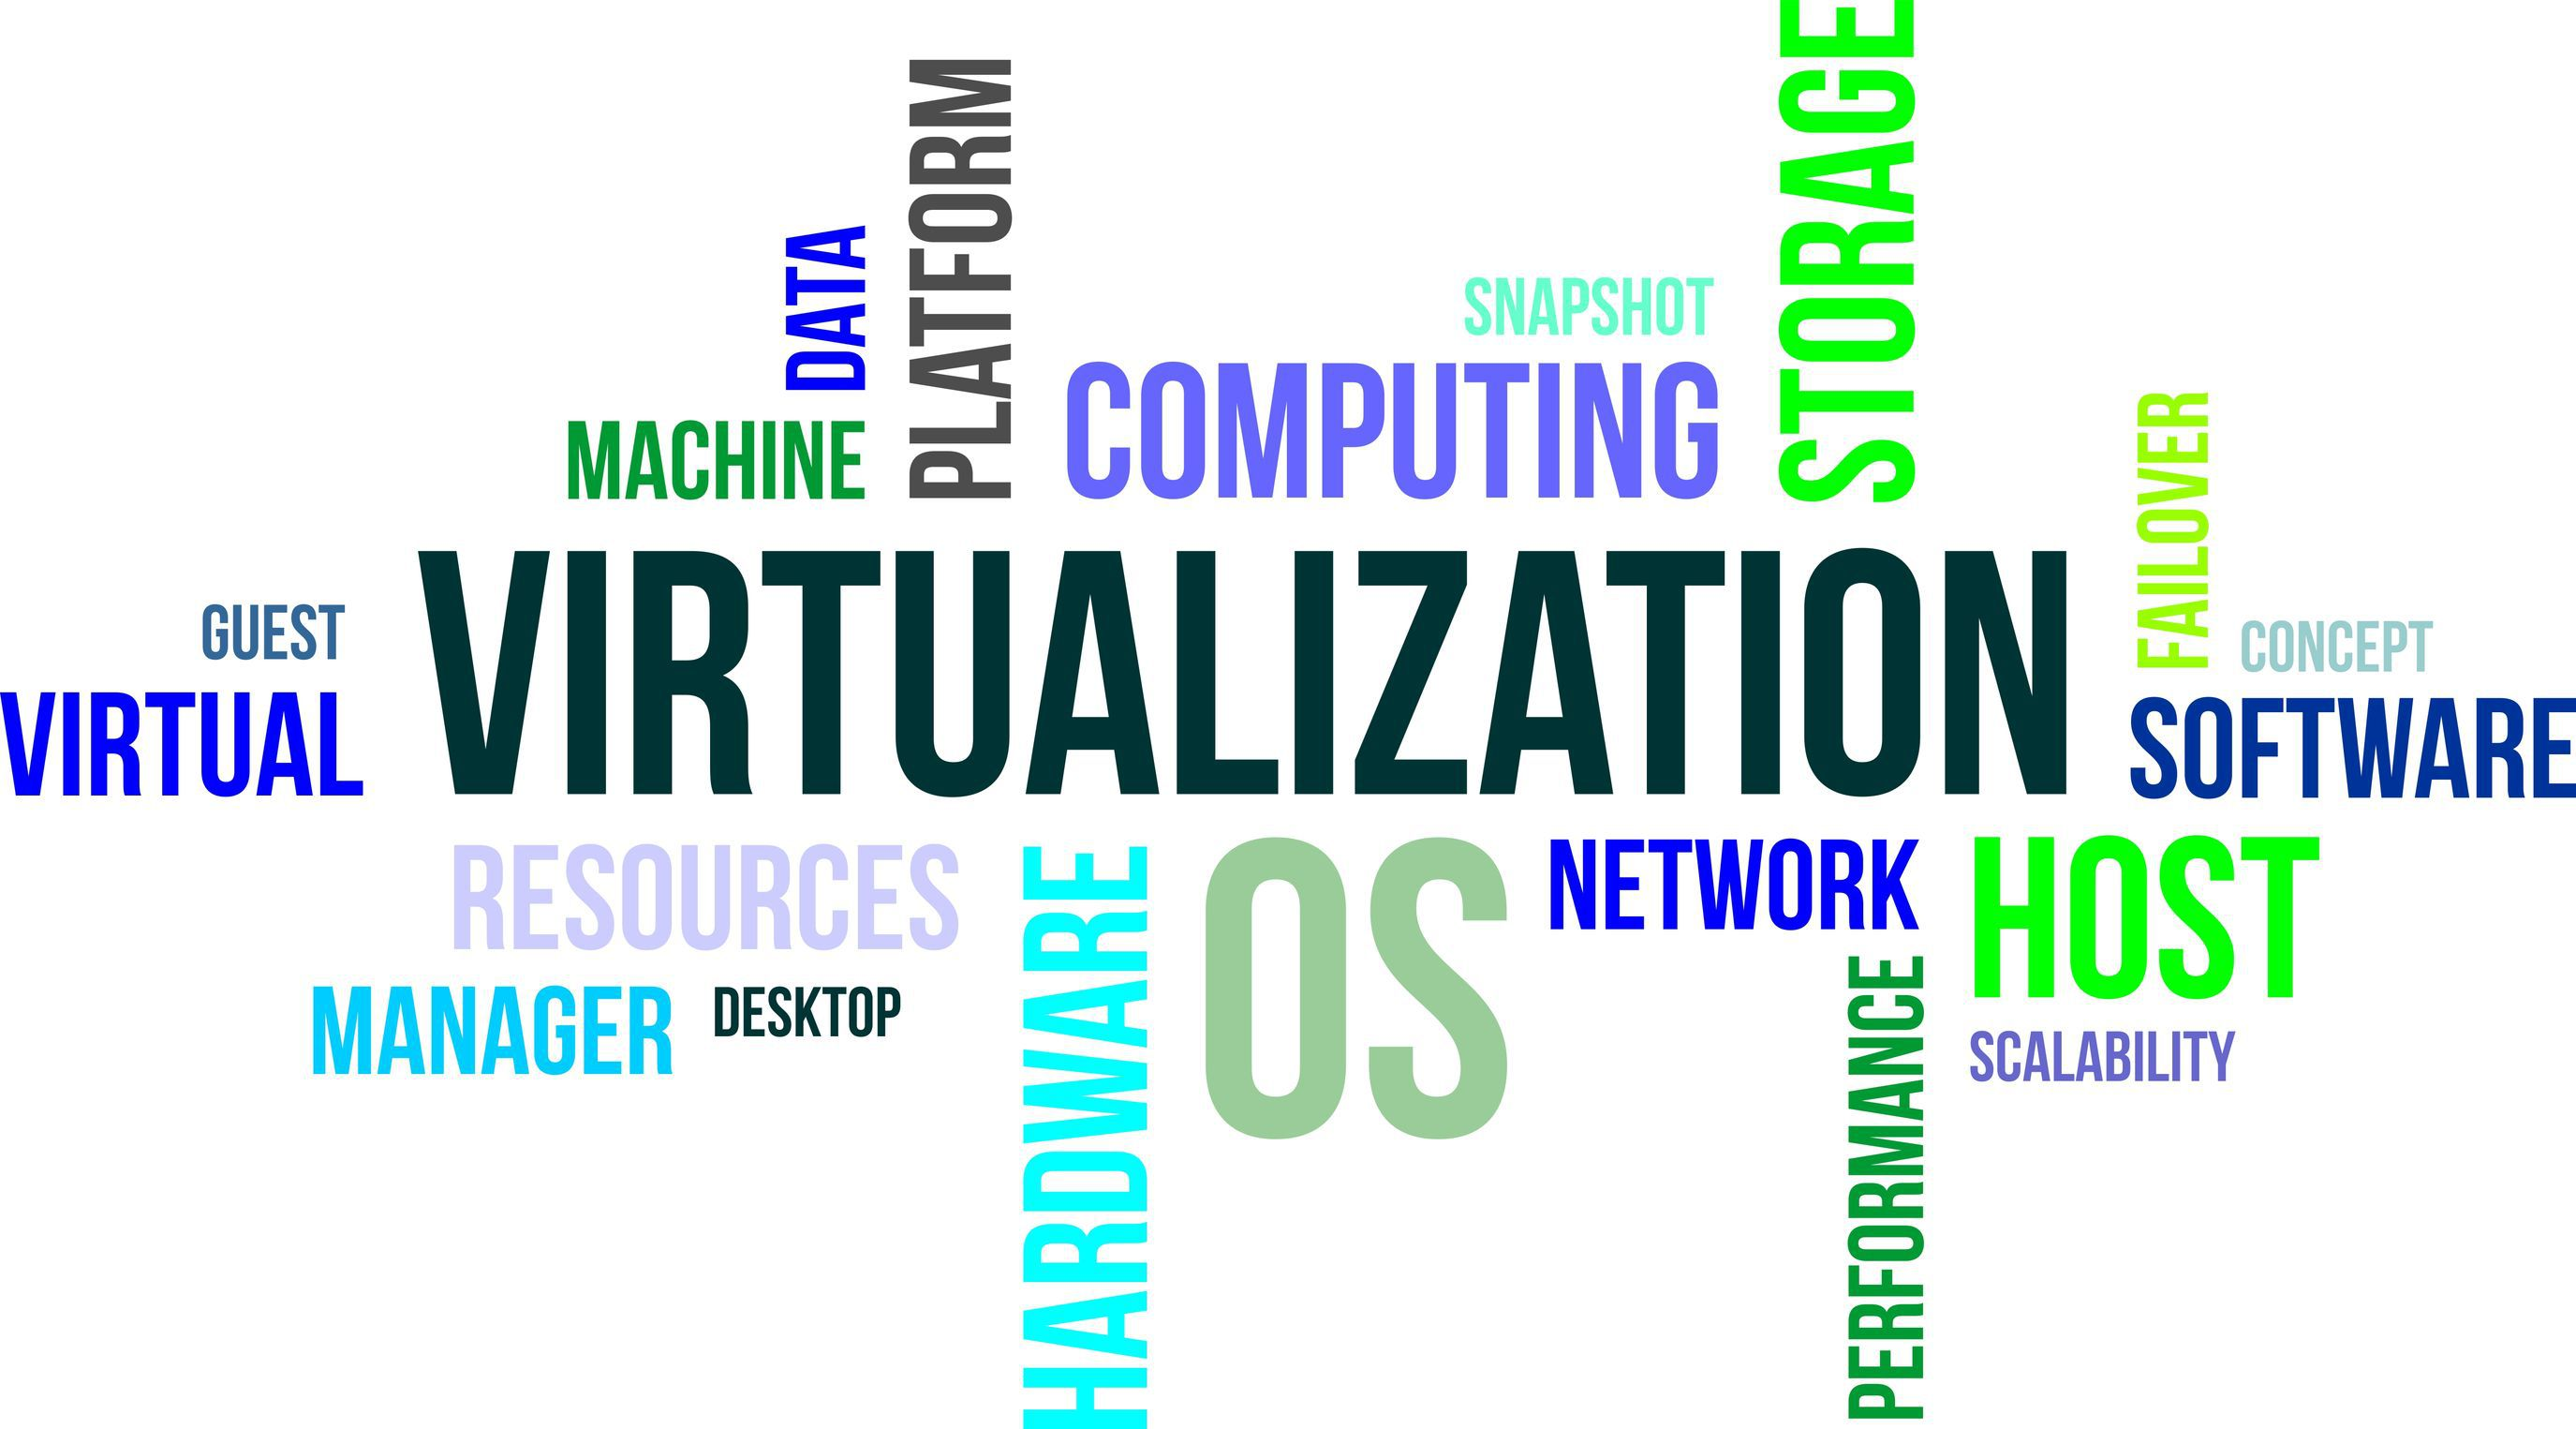 Virtualization Storage Models and Architecture